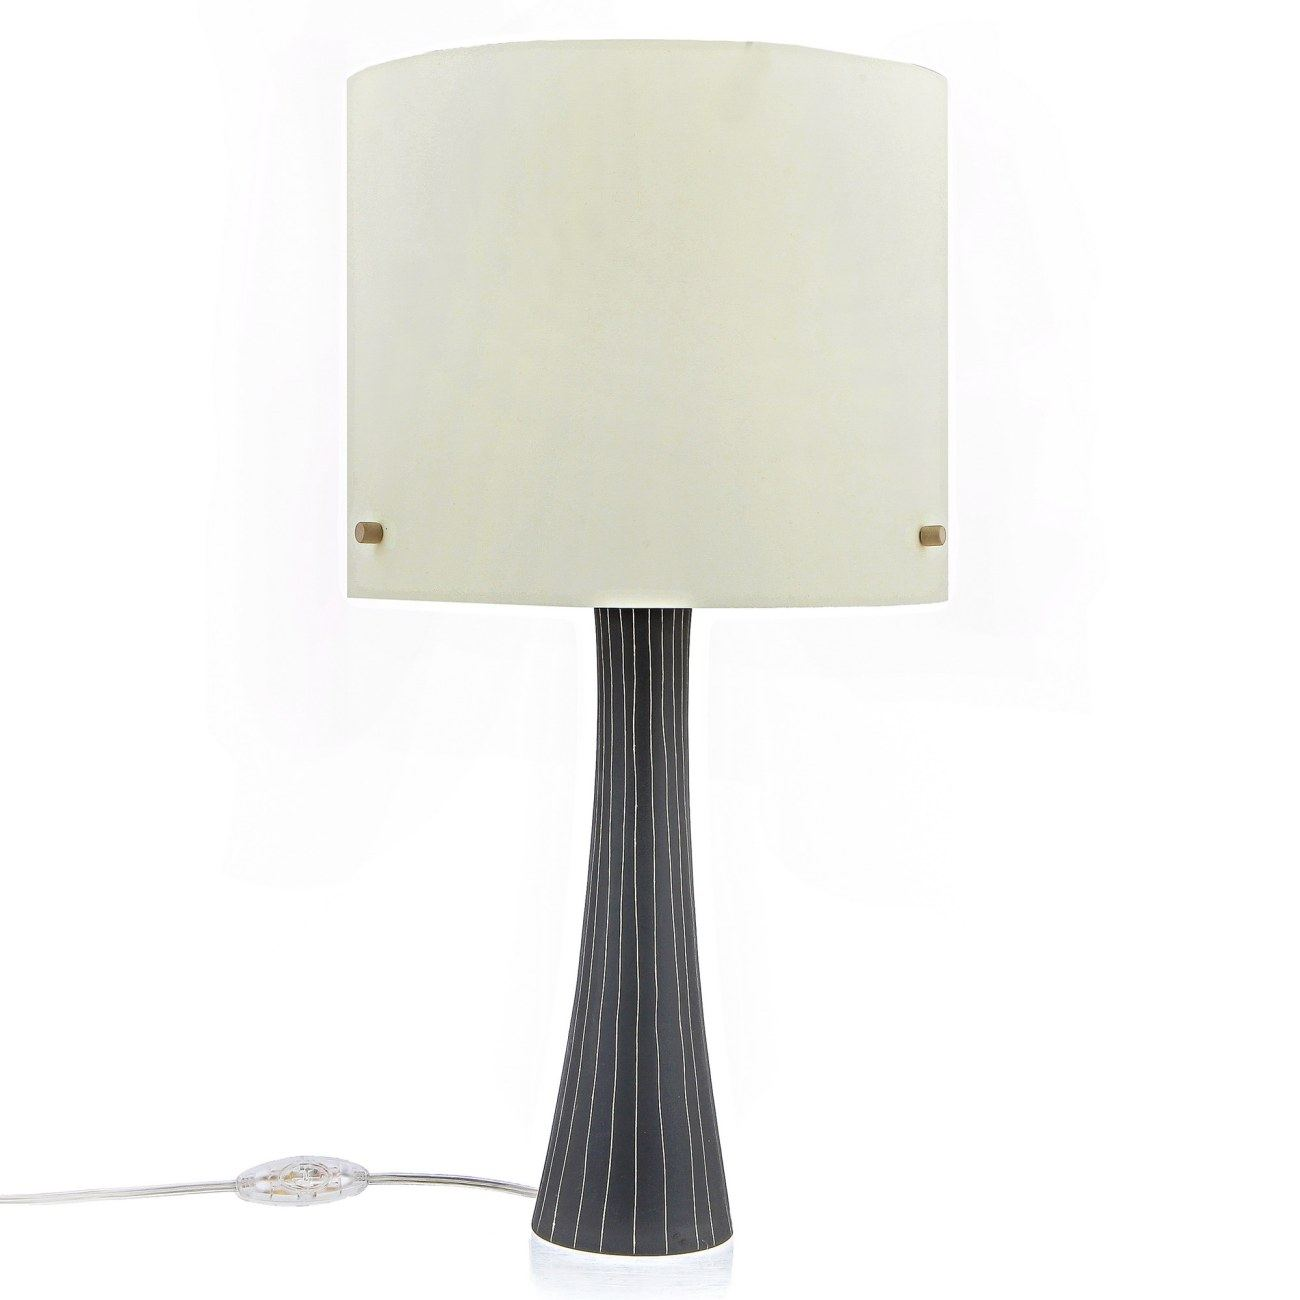 Ceramic Table Lamp With Shade Modern Handmade Grey Small